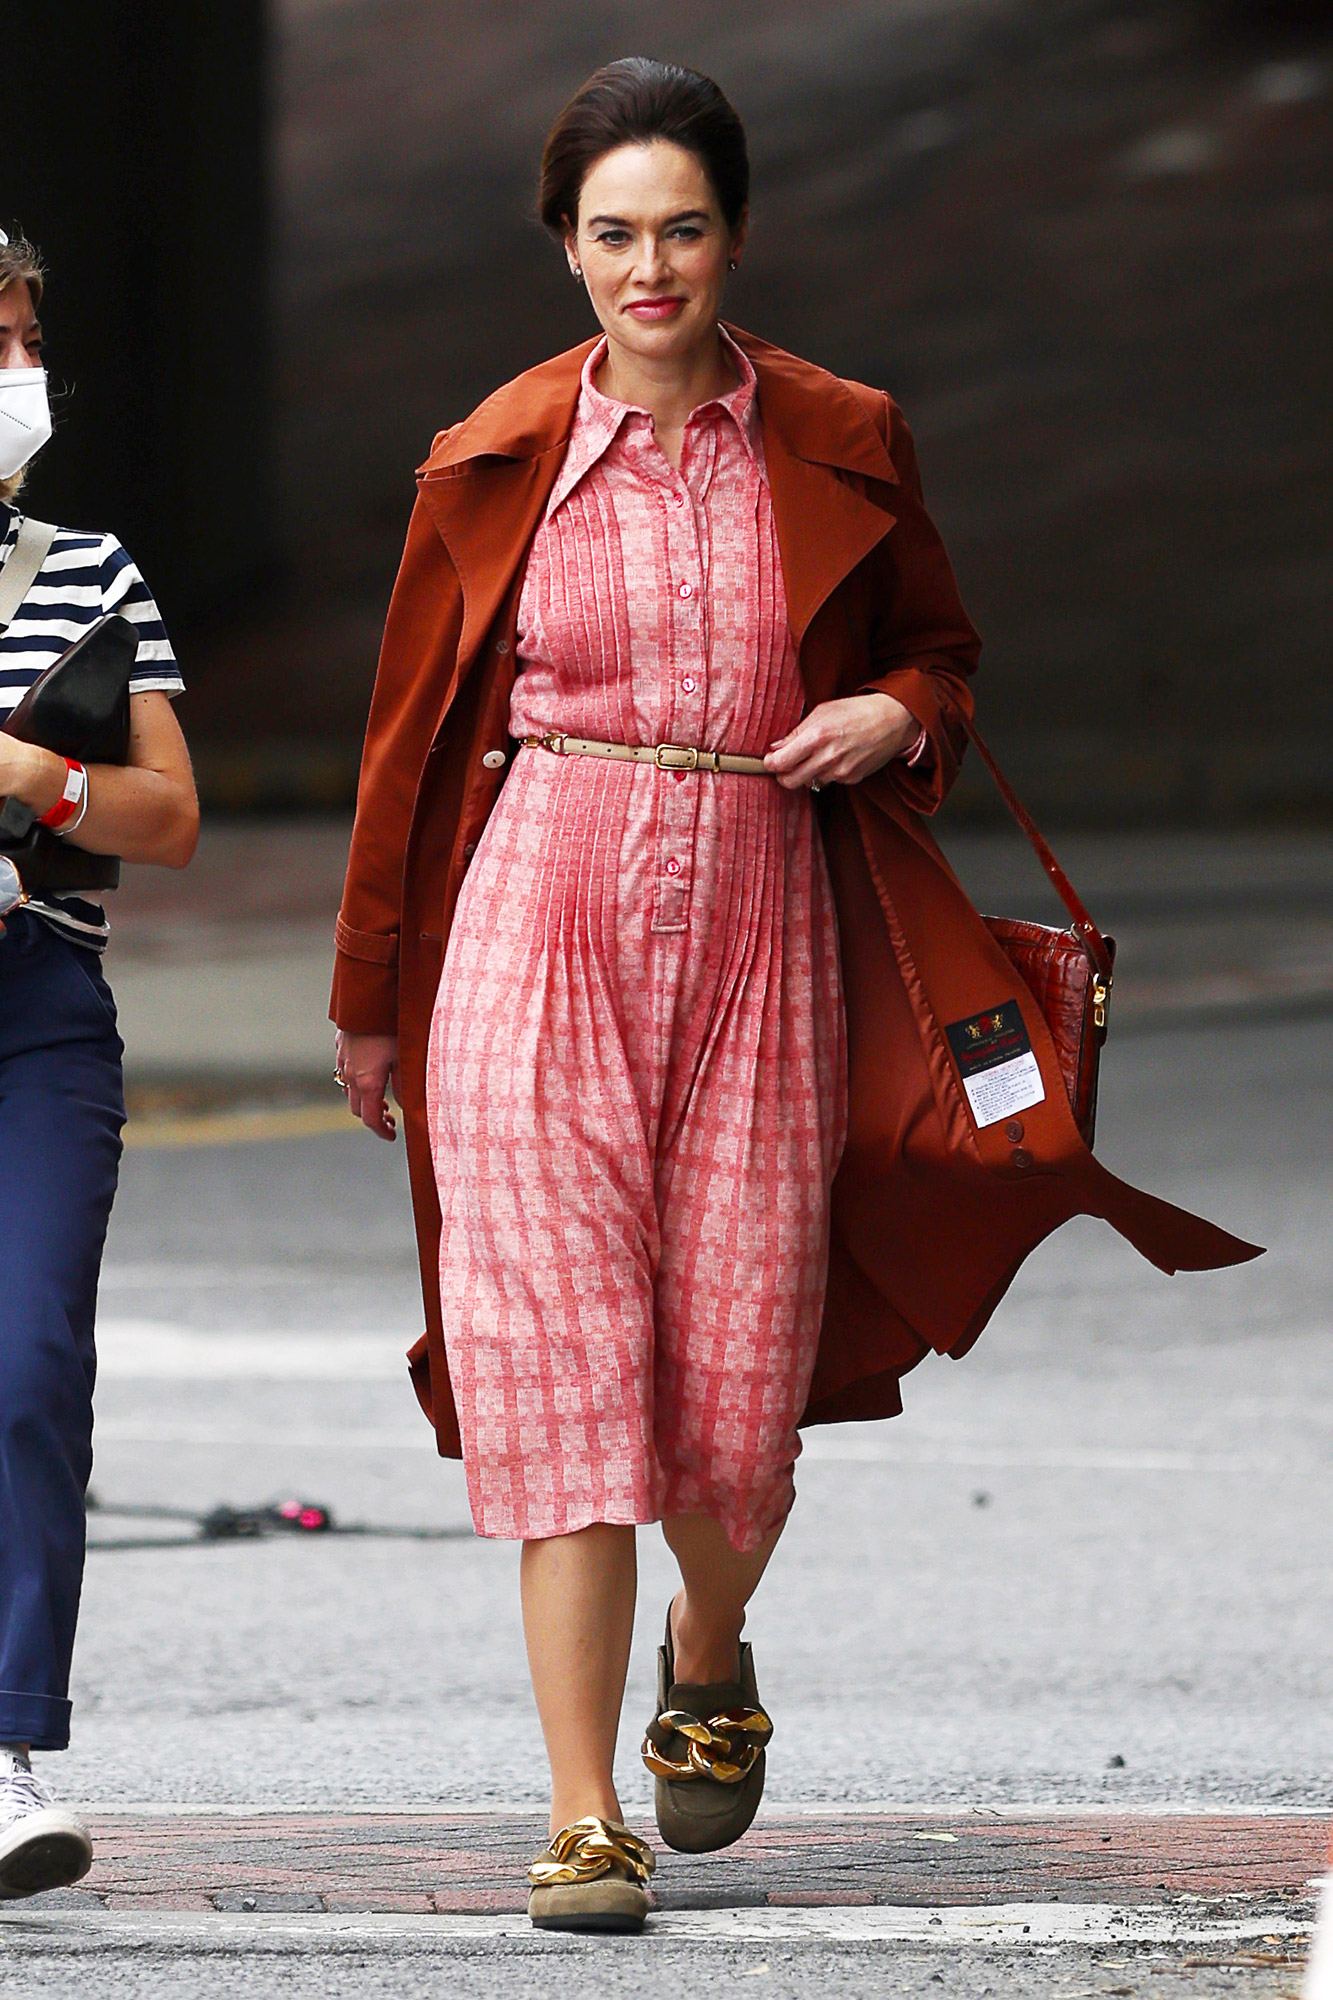 Lena Headey is Spotted For The First Time on set of 'White House Plumbers' in Poughkeepsie, New York.